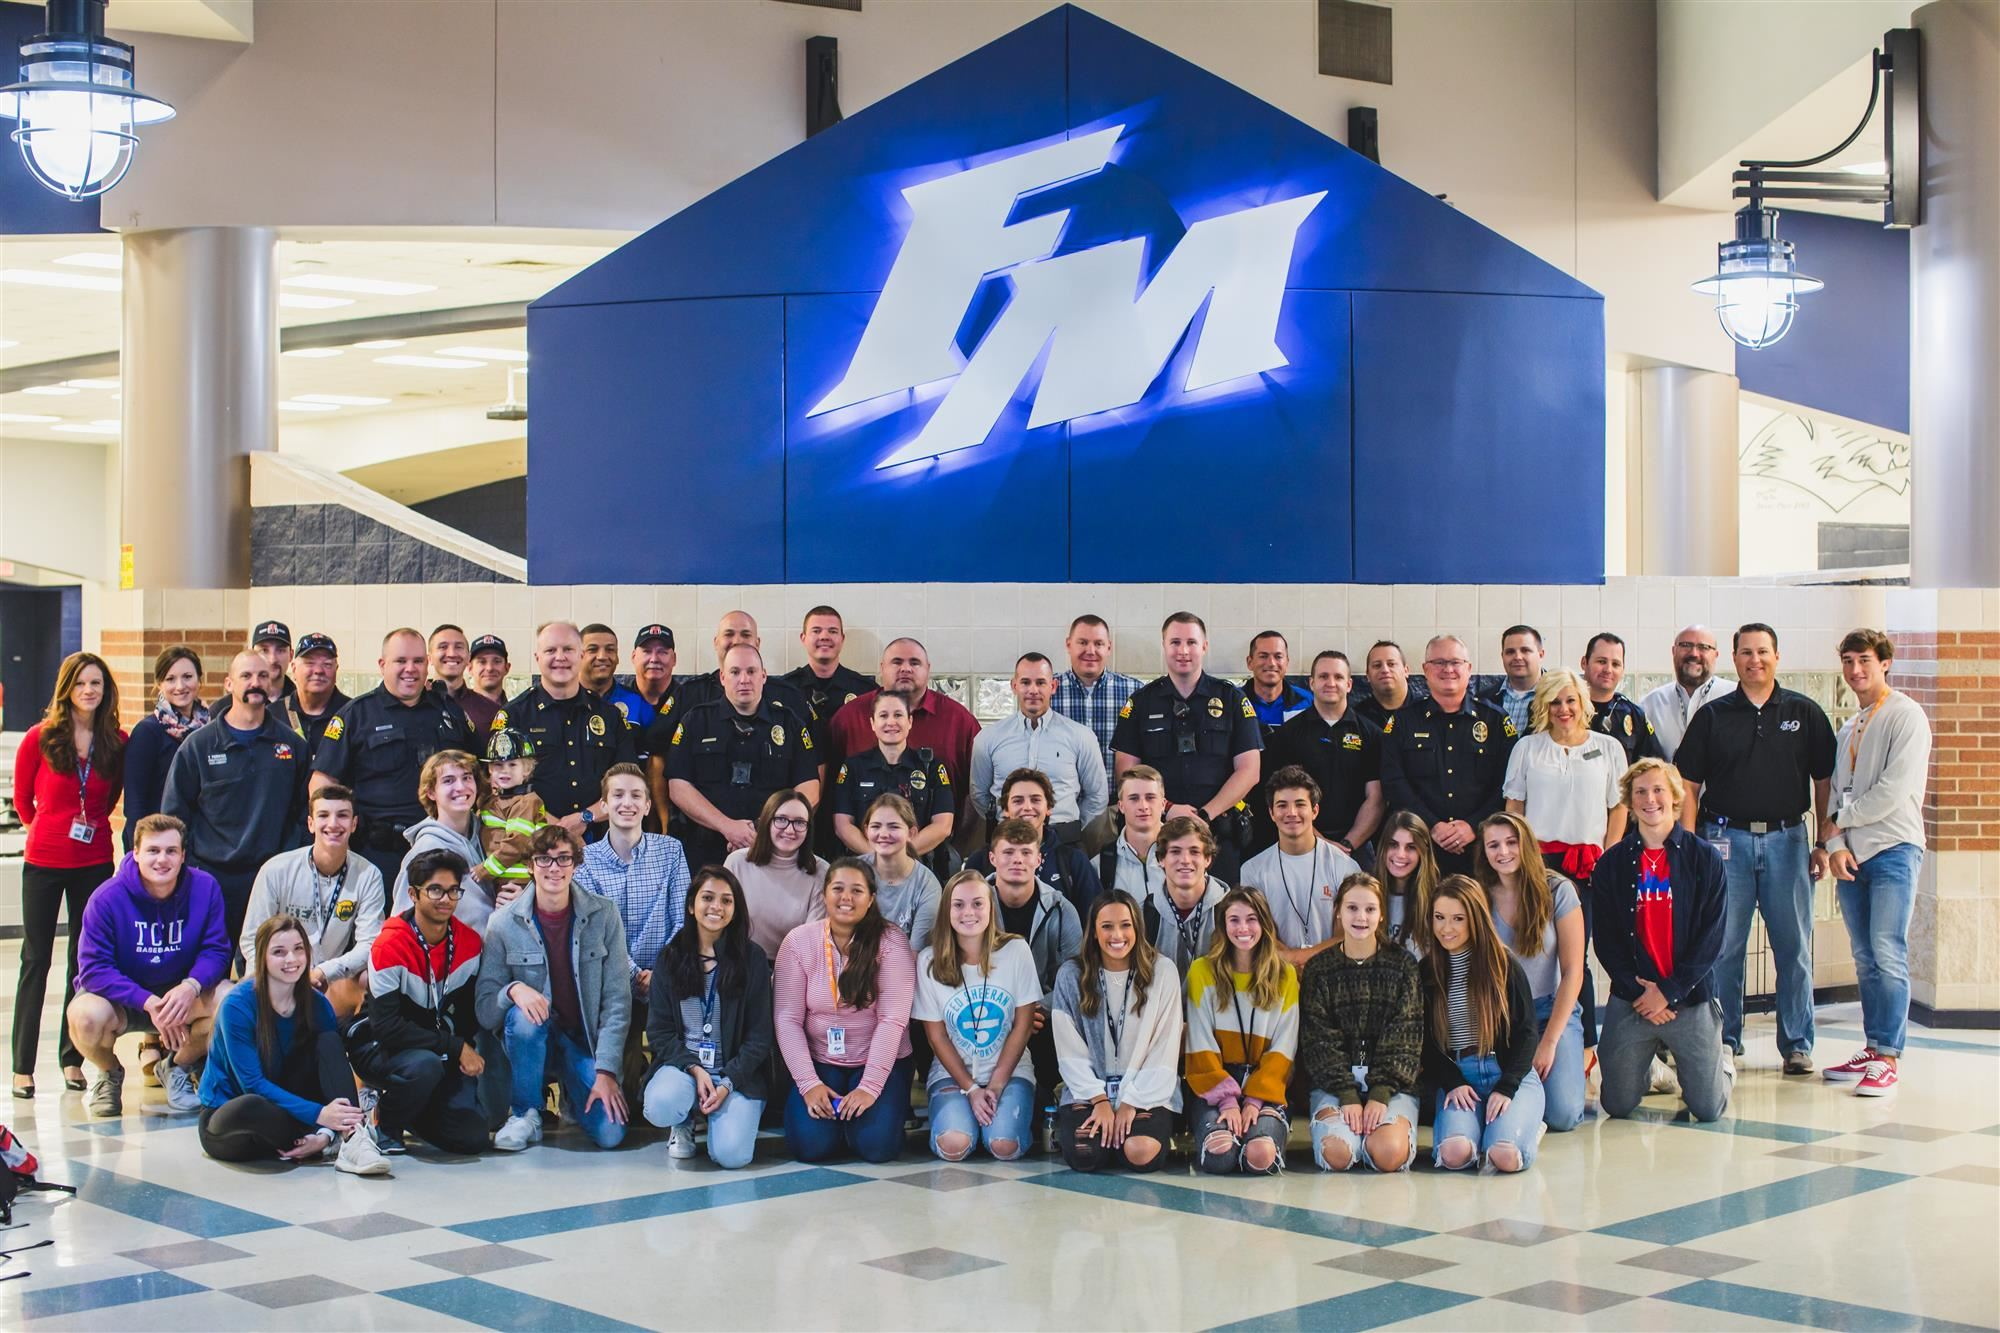 Group picture of Flower Mound police and firefighters standing with FMHS students. 2019